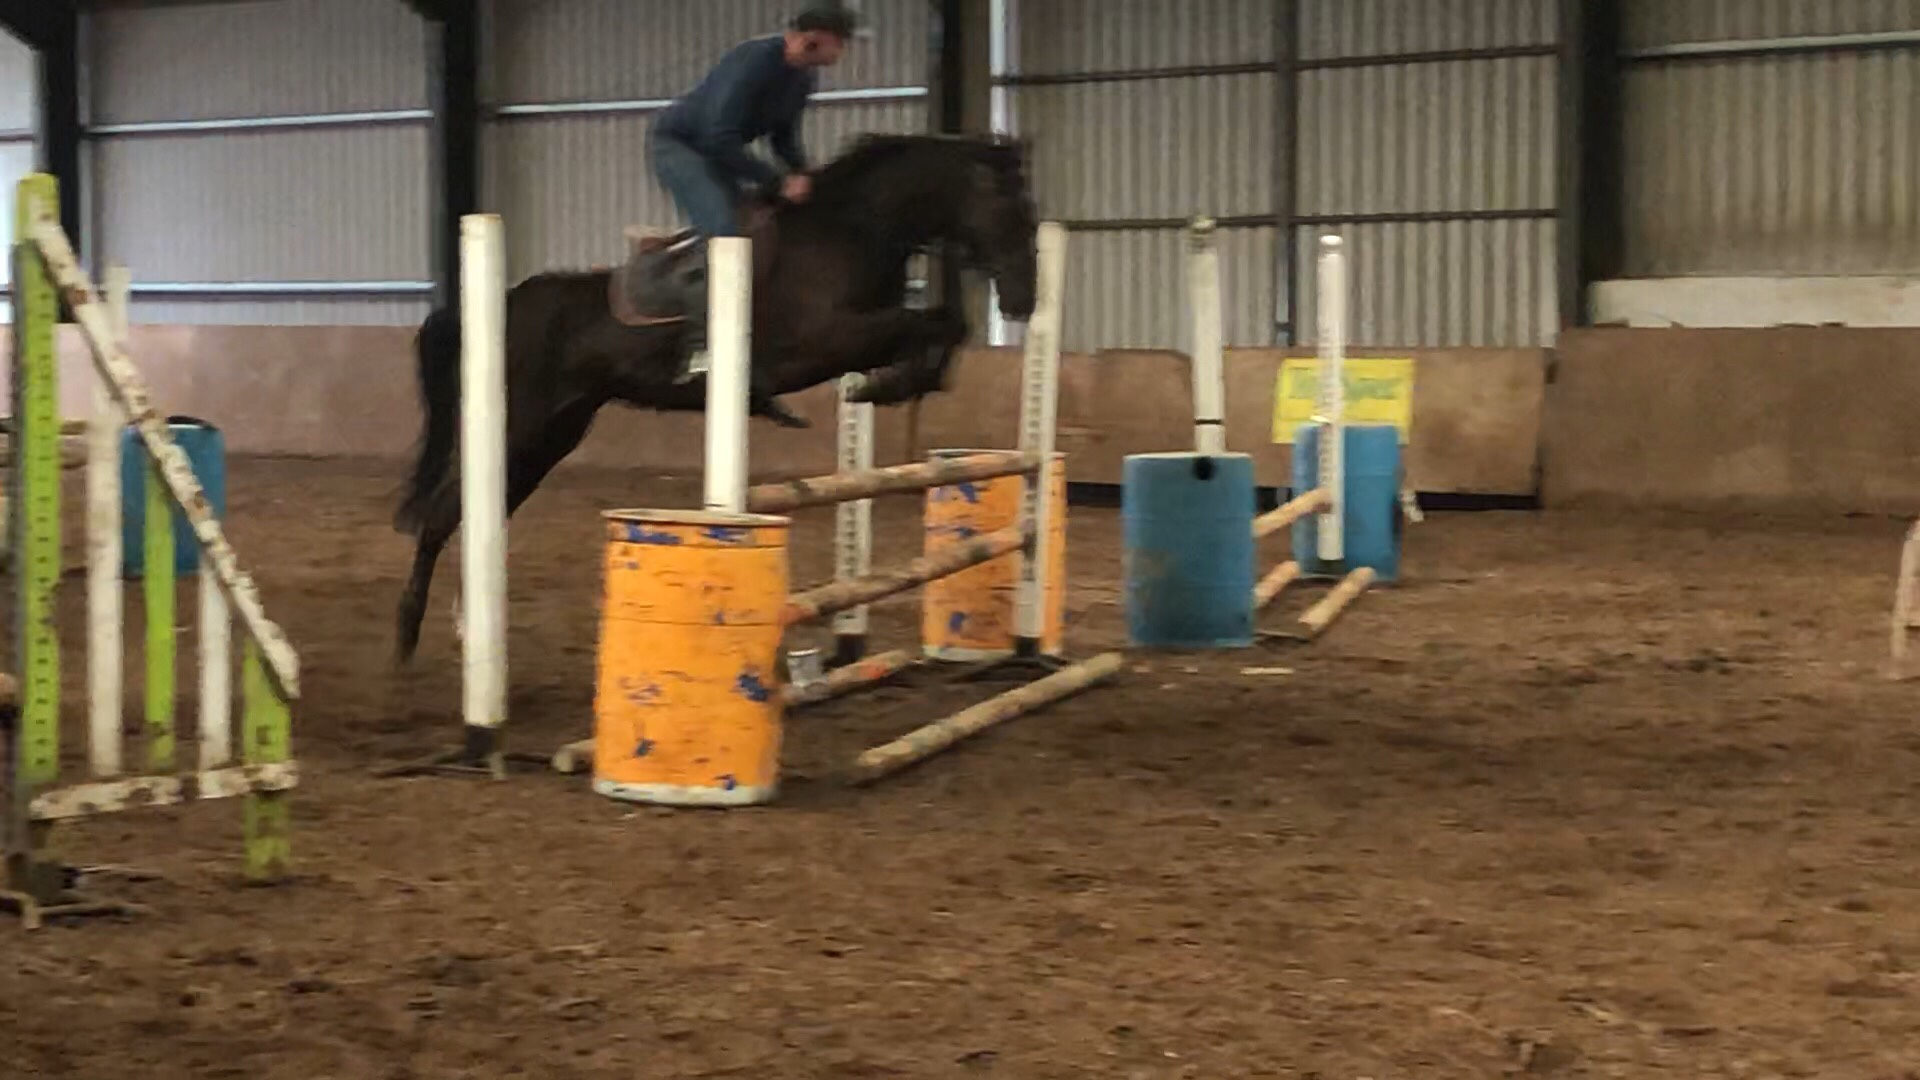 Mick jumping indoors